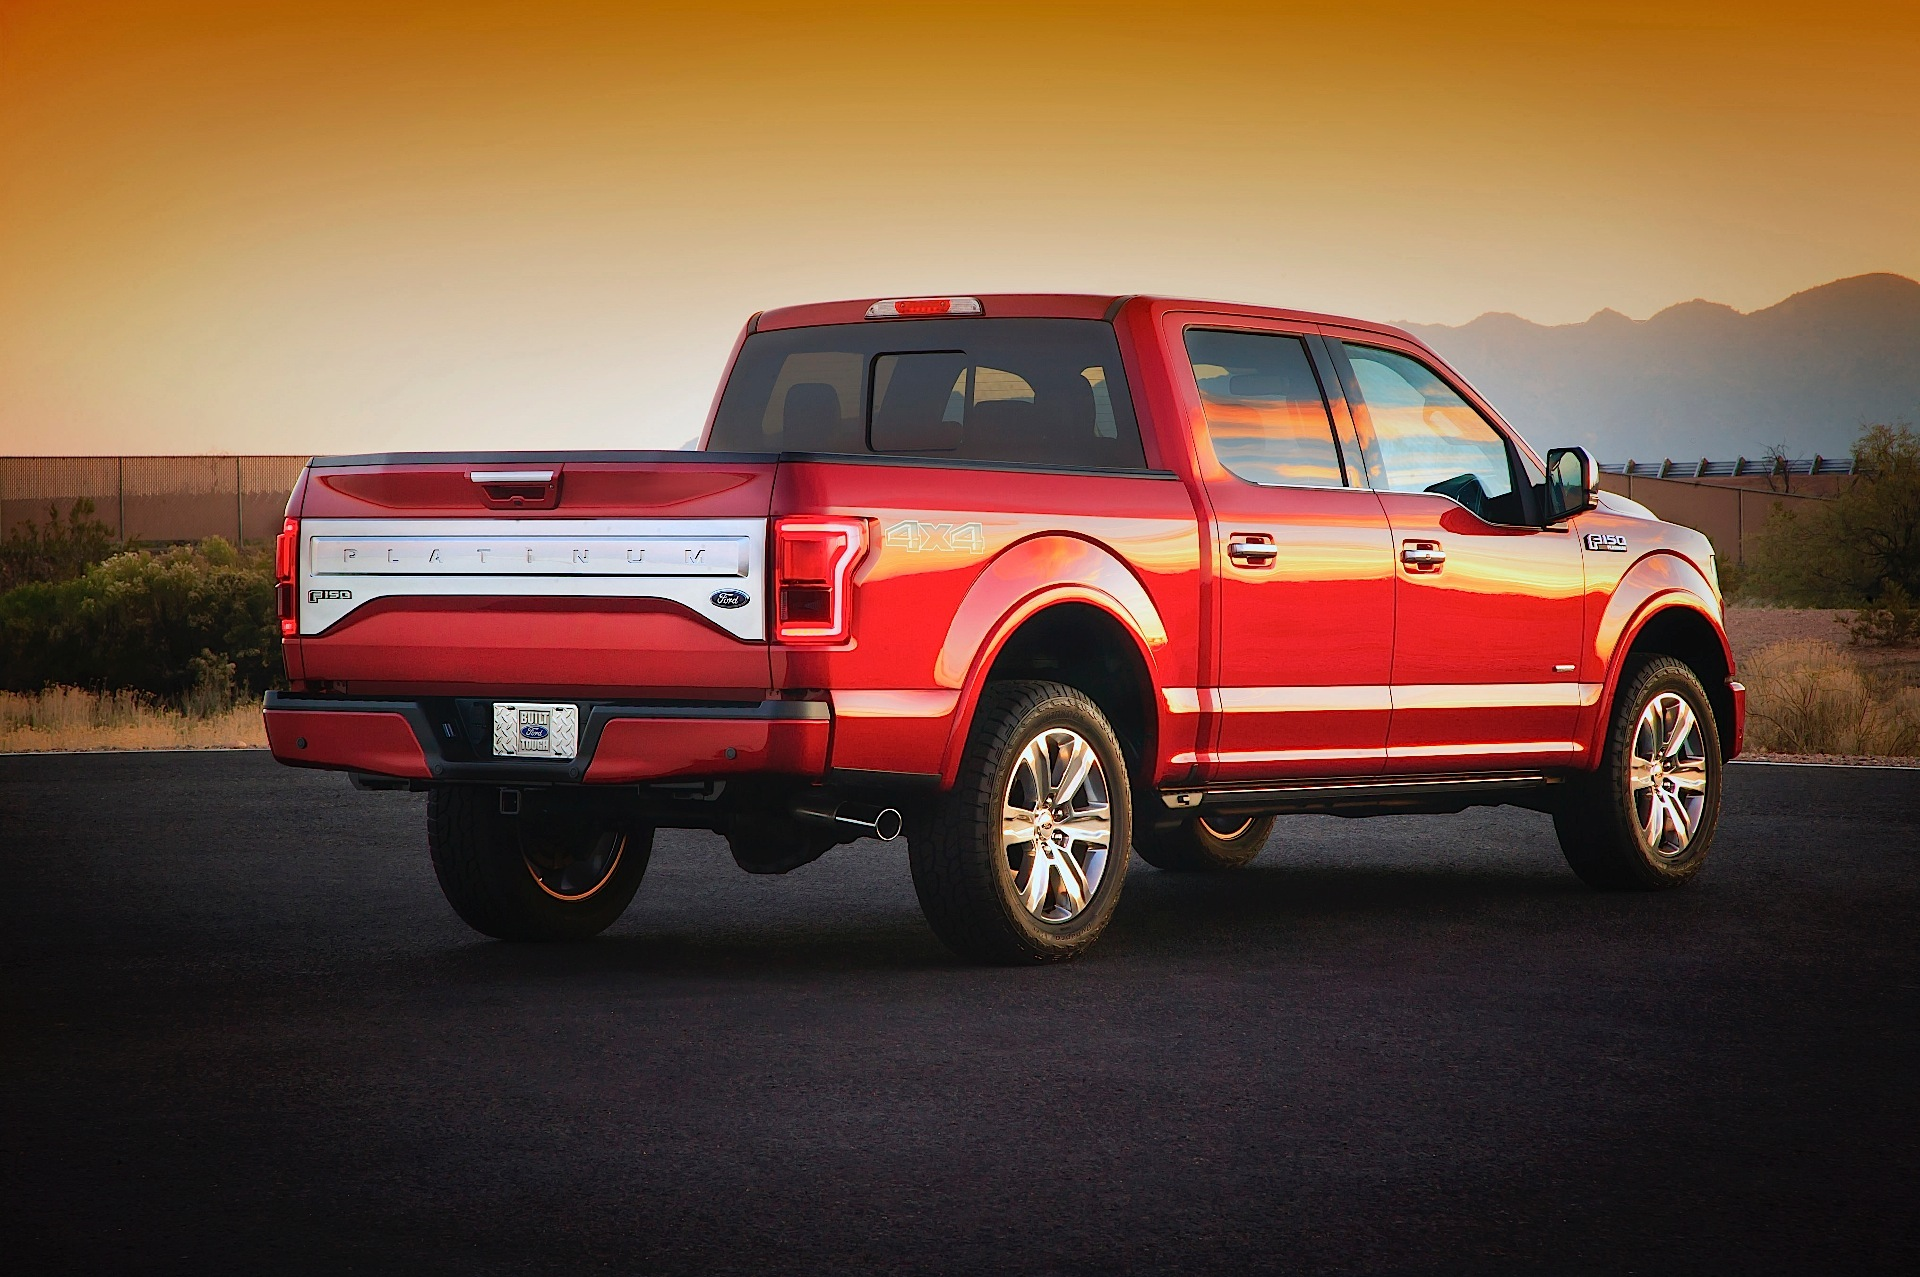 Ford Lightning Specs >> FORD F-150 Super Crew - 2014, 2015, 2016, 2017 - autoevolution